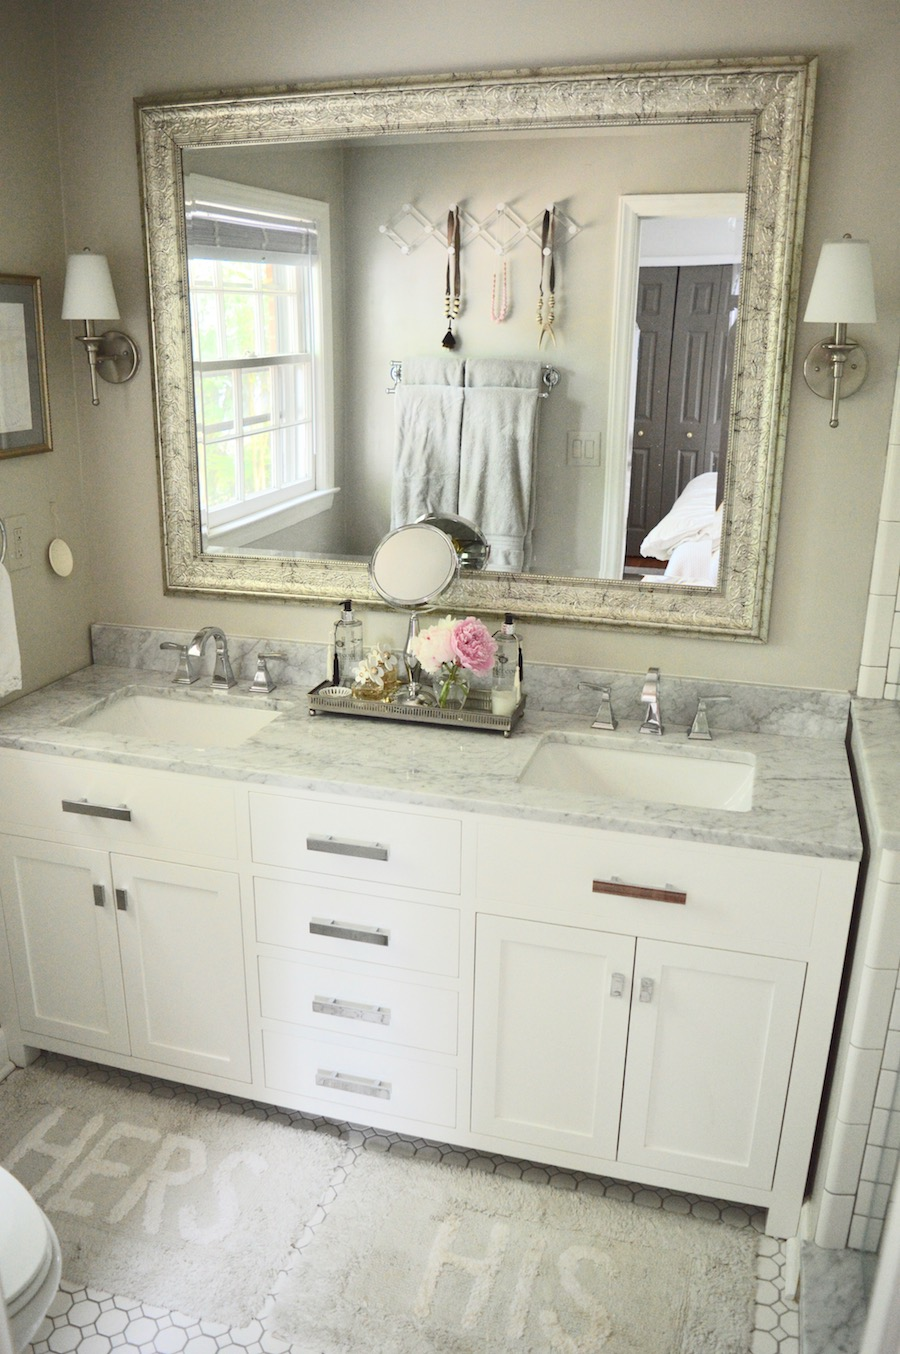 Master bathroom reno reveal gray white marble and subway tile dsc1013 dailygadgetfo Gallery